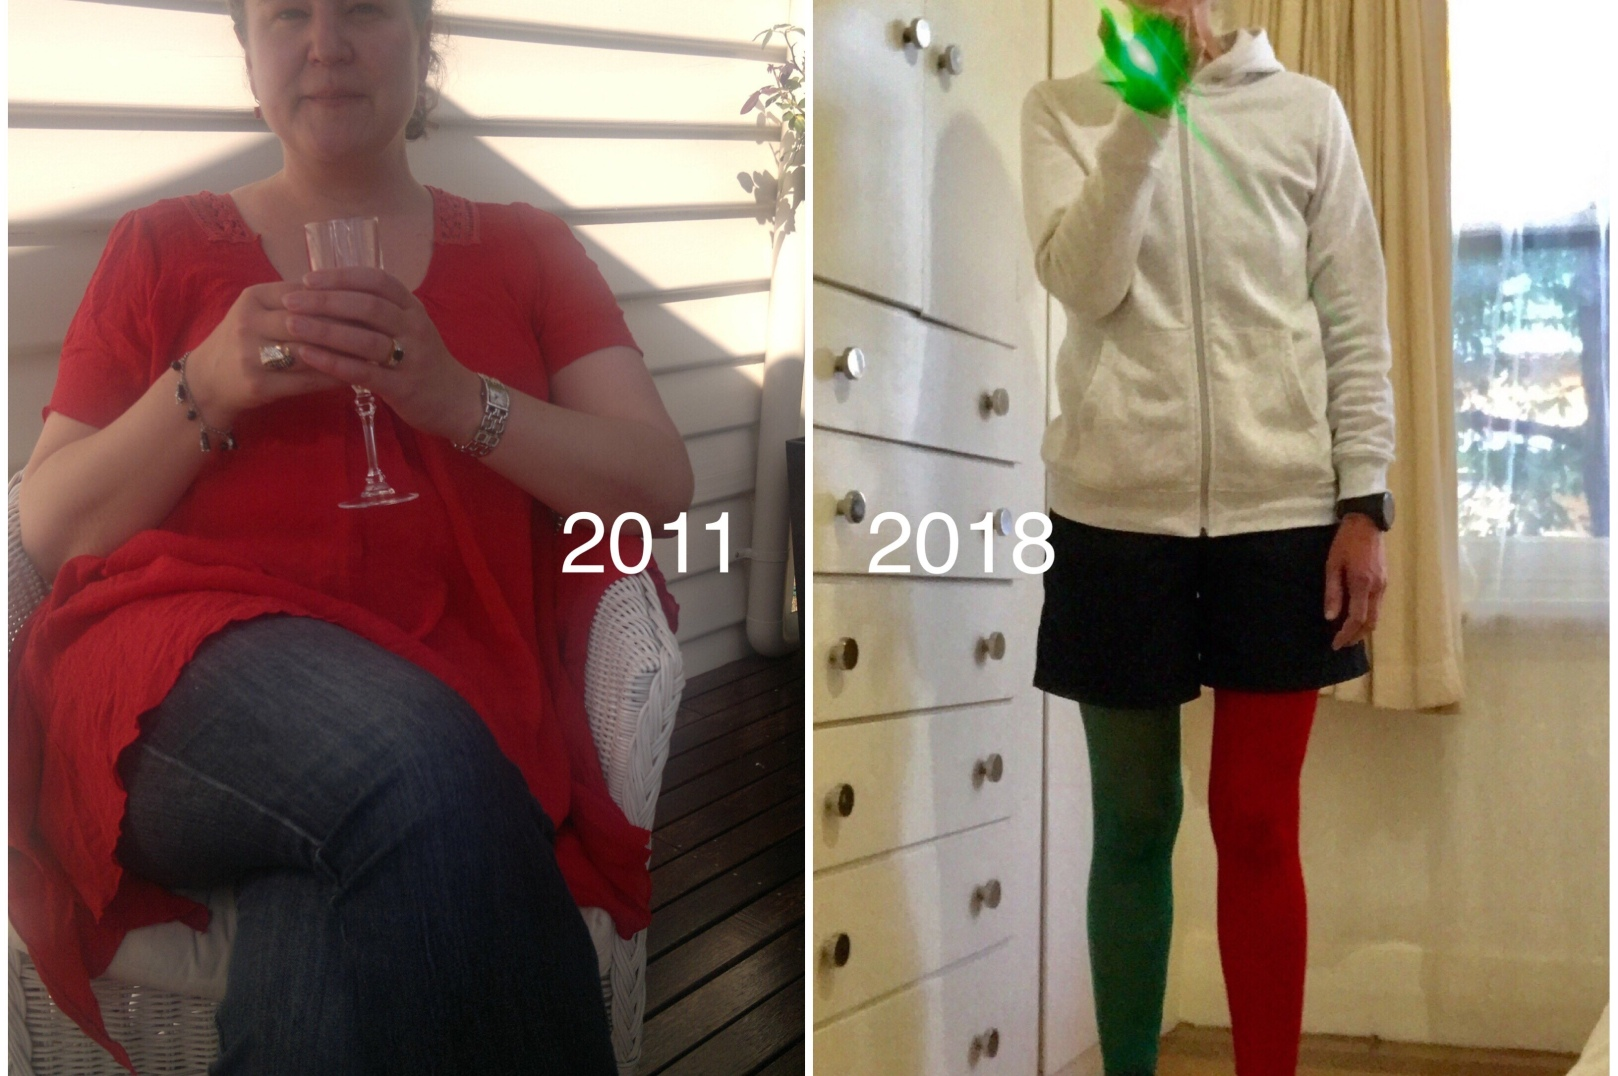 Alcohol, drinking, Prosecco, health, sobriety, running, parkrun, transformation, weight loss